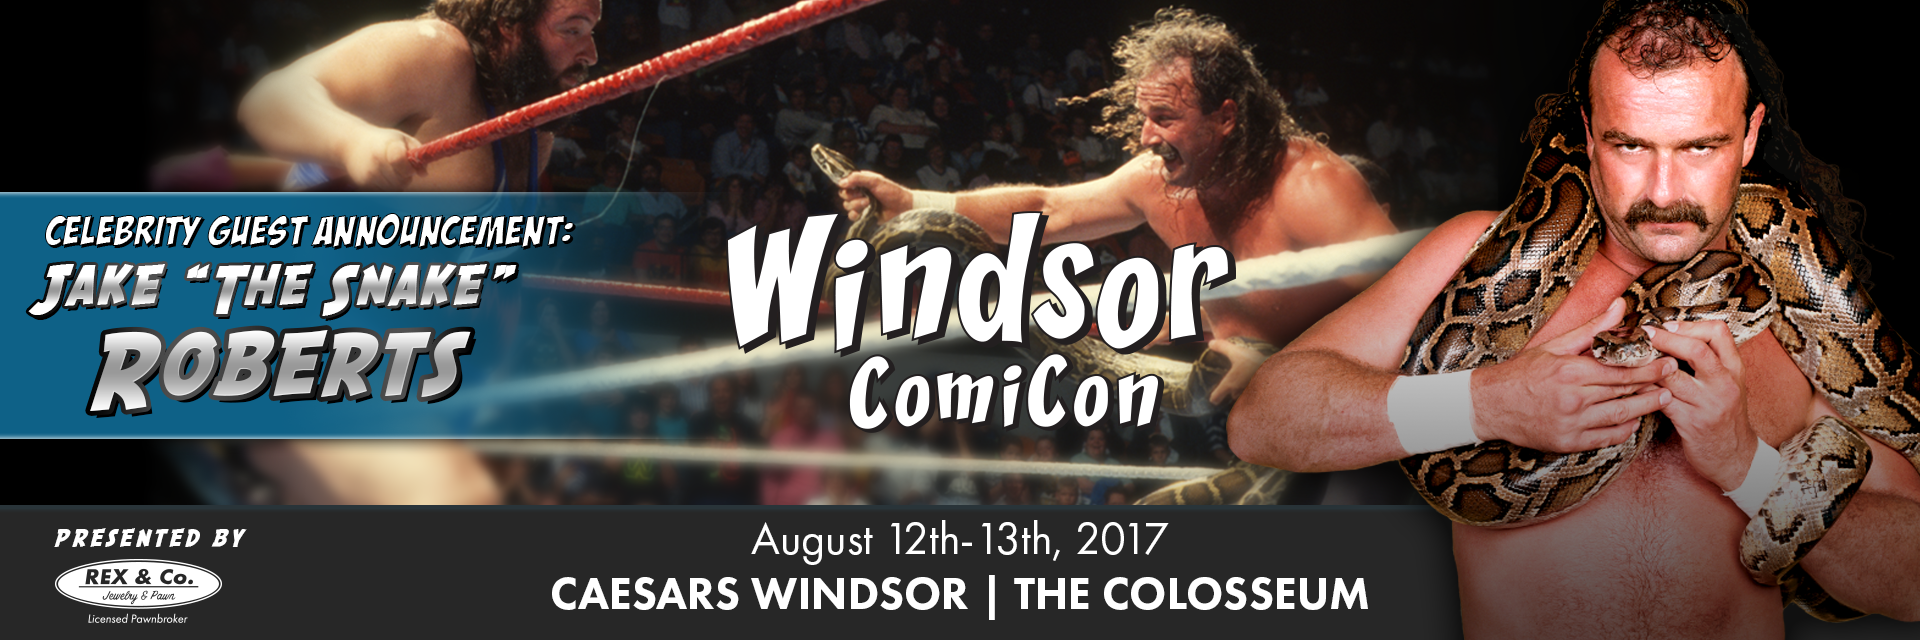 Wrestling Legend Jake the Snake Roberts to Attend Windsor ComiCon 2017